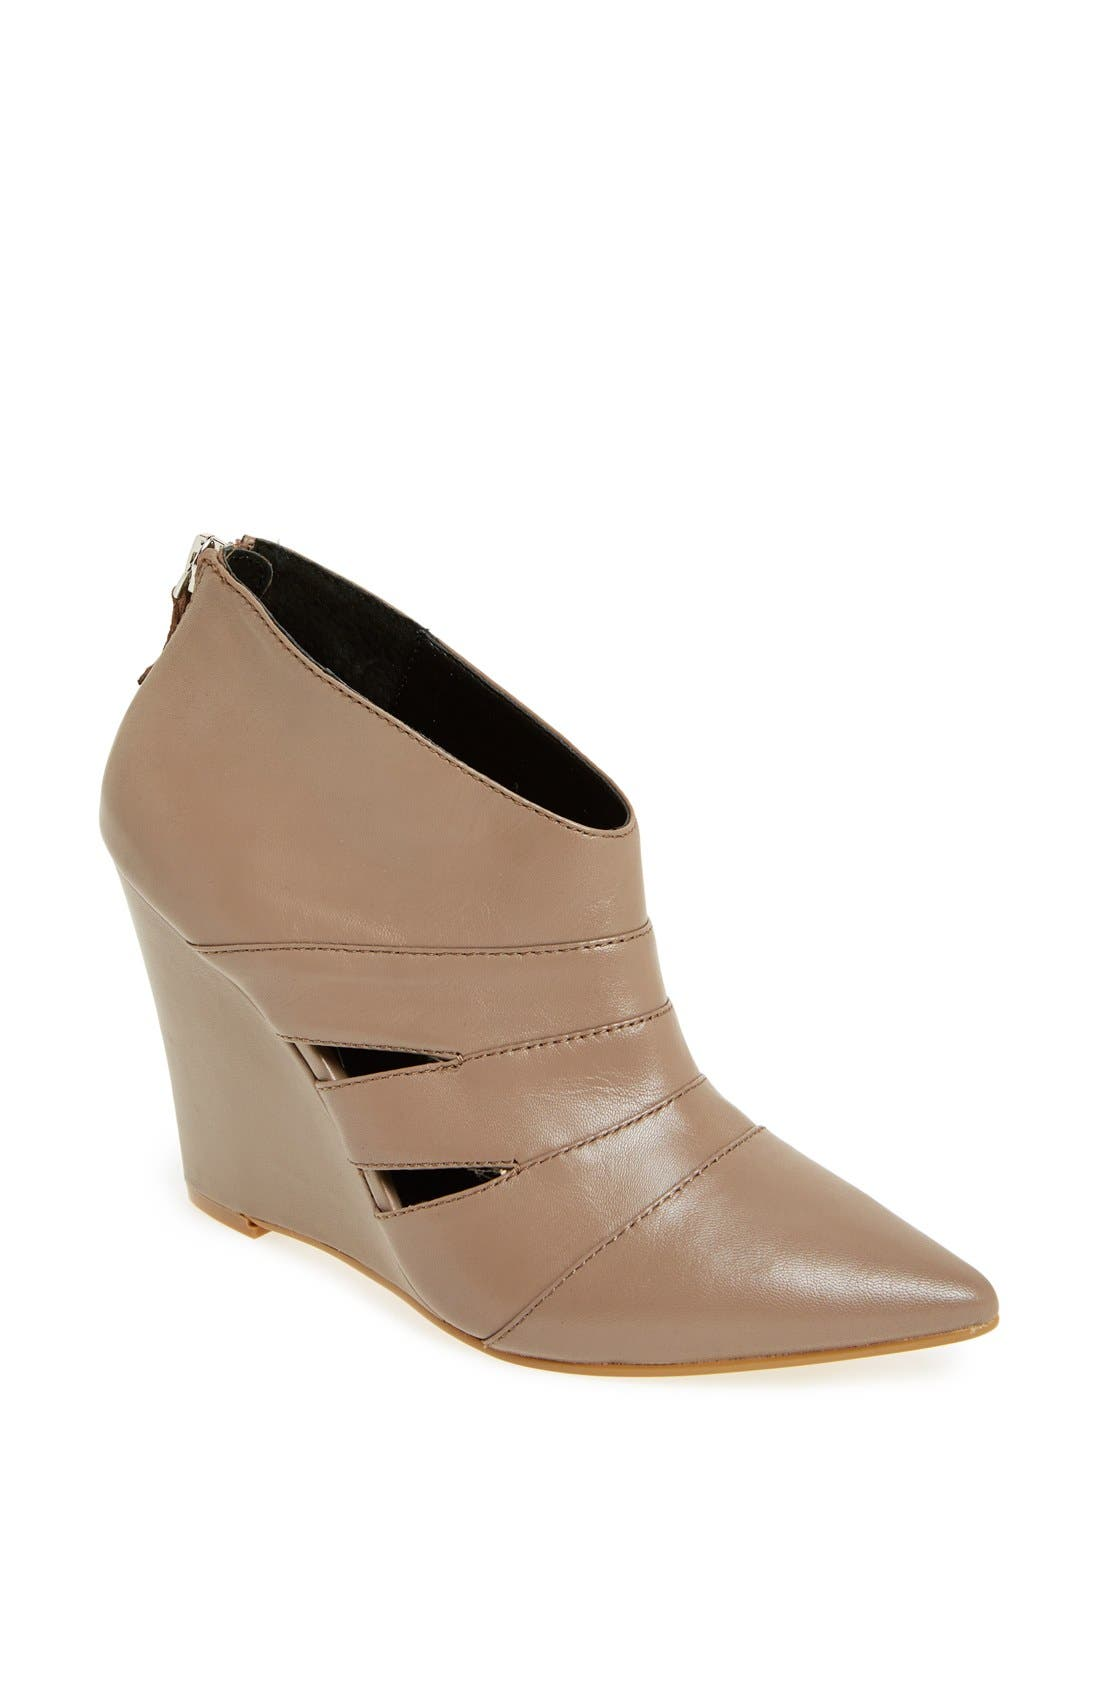 Main Image - Trouvé 'Tilly' Pointy Toe Bootie